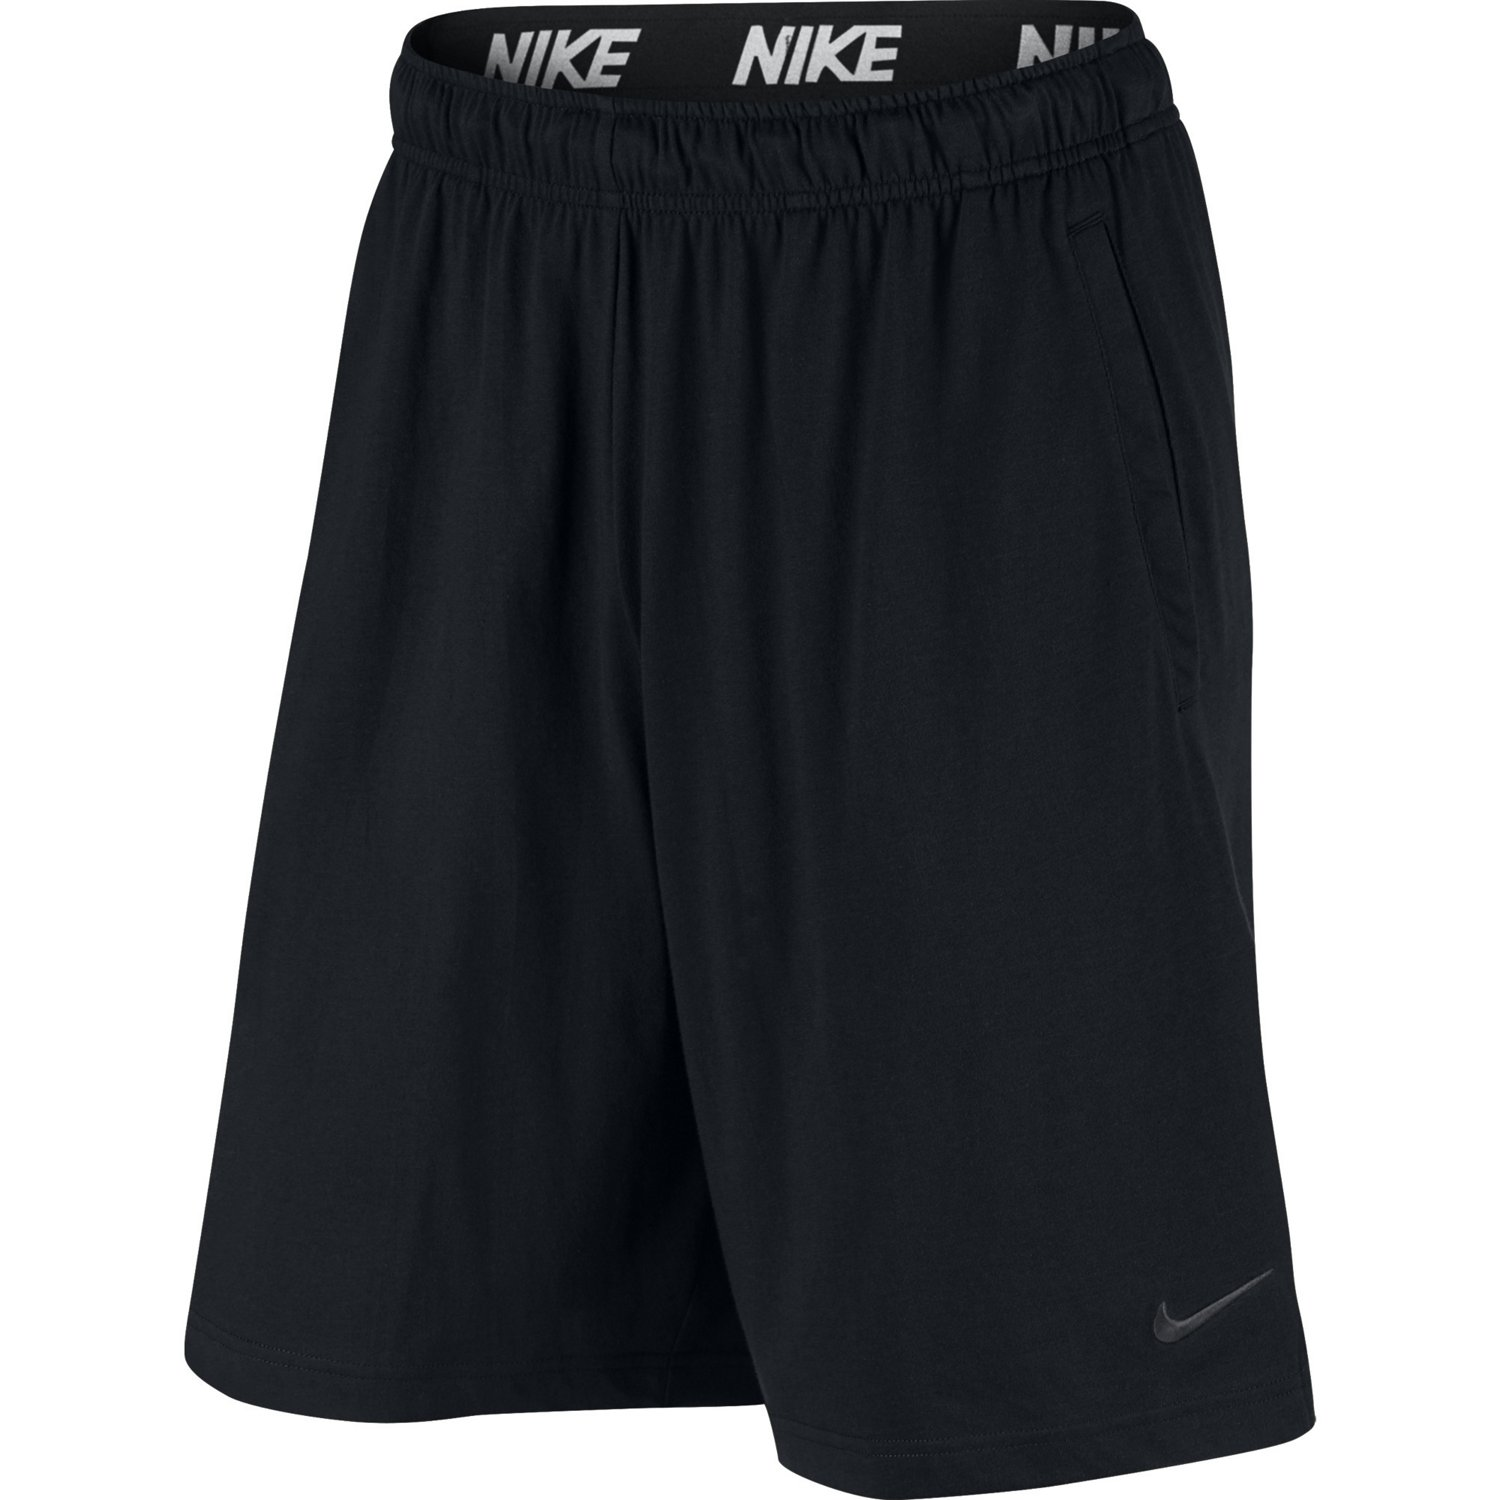 9911544d27be Display product reviews for Nike Men s Training Short